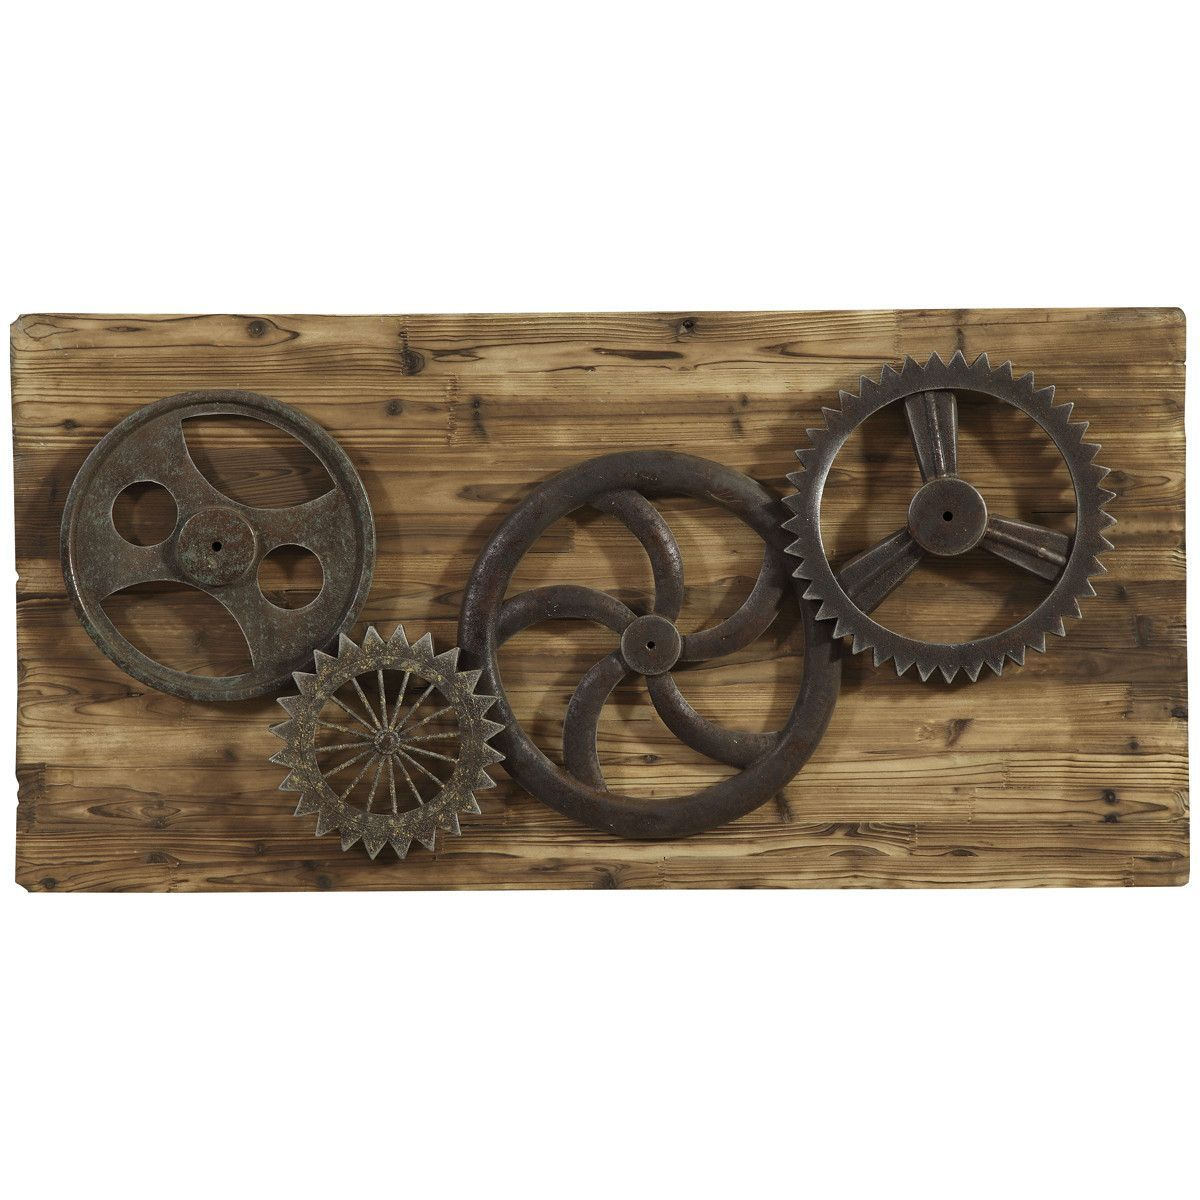 Bassett Mirror Industrial Gears Wall Art